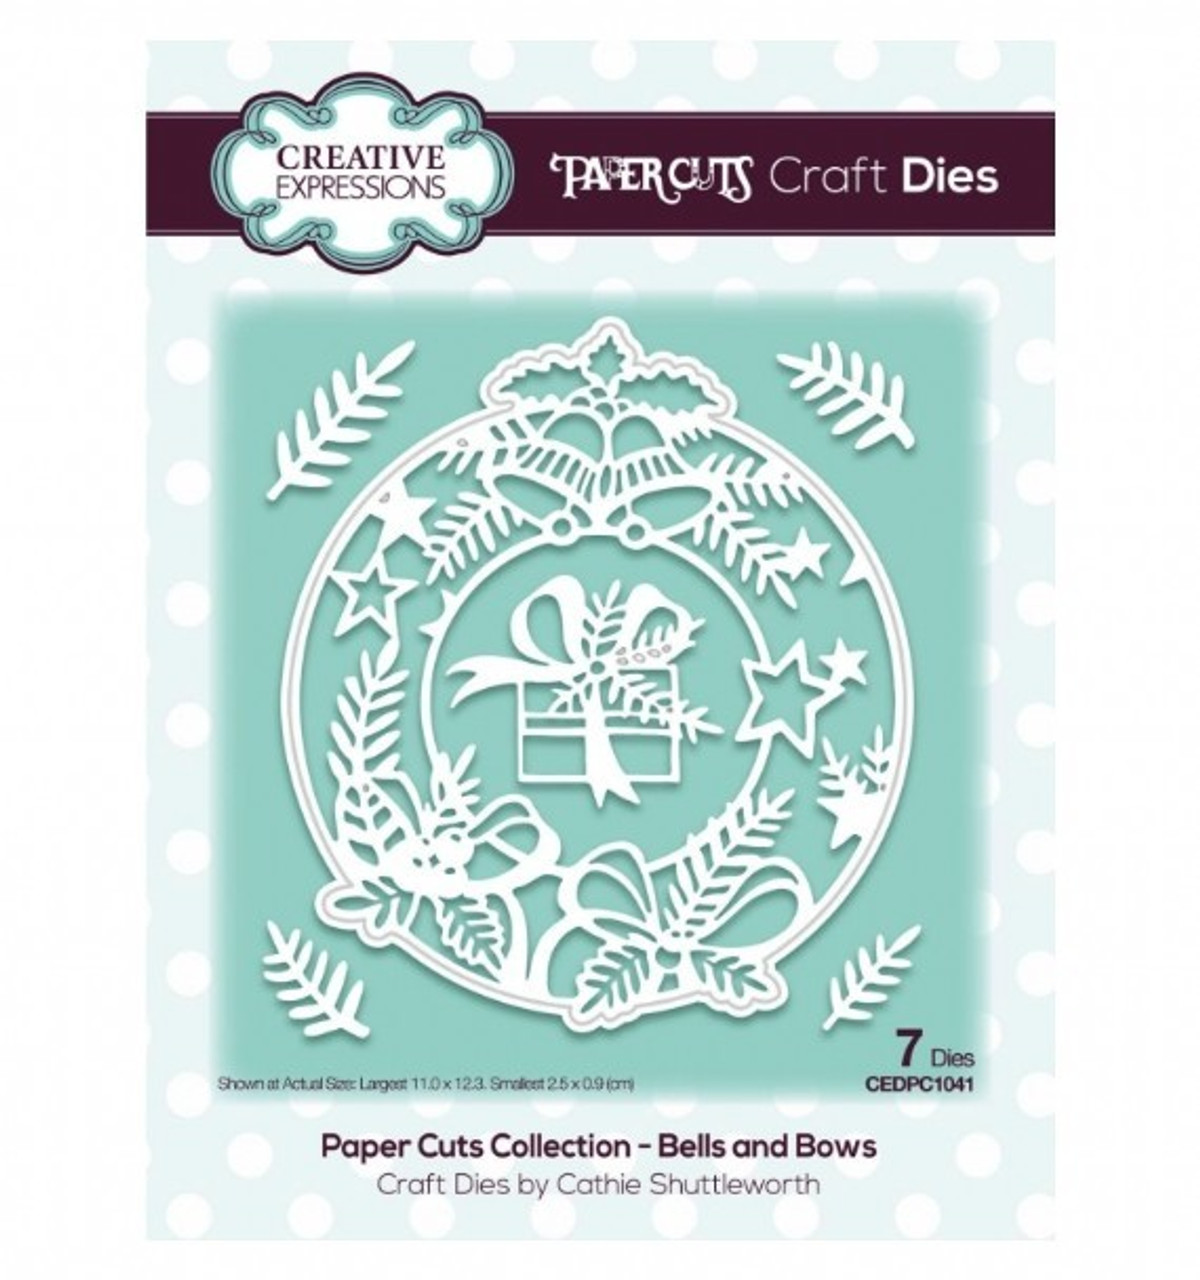 Creative Expressions Paper Cuts Collection Die - Bells & Bows CEDPC1041